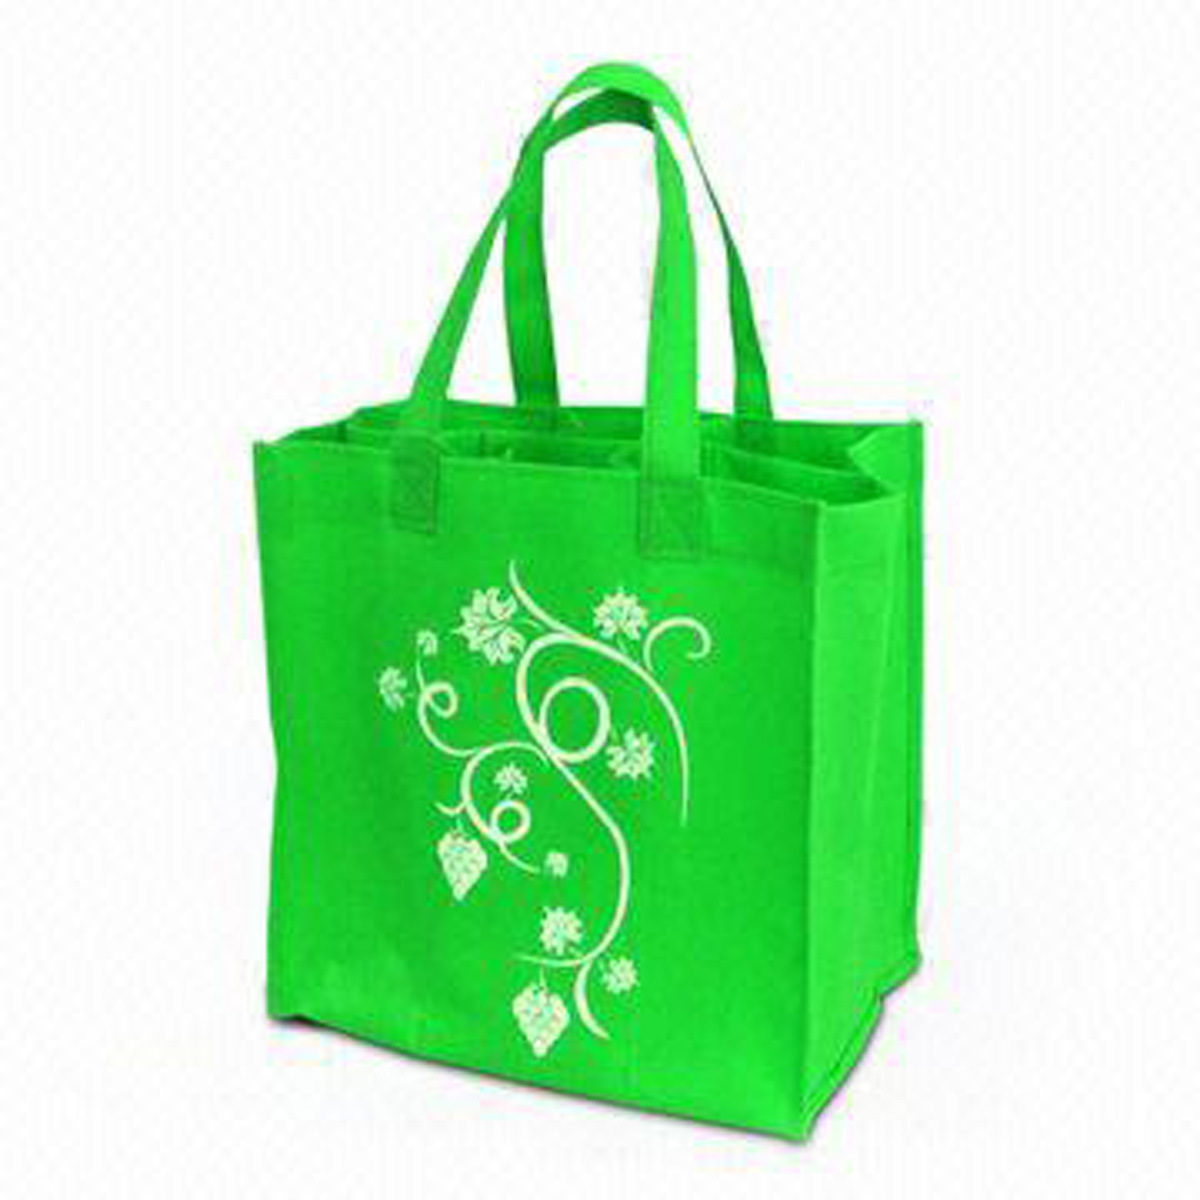 china green shopping bag photos pictures made in. Black Bedroom Furniture Sets. Home Design Ideas